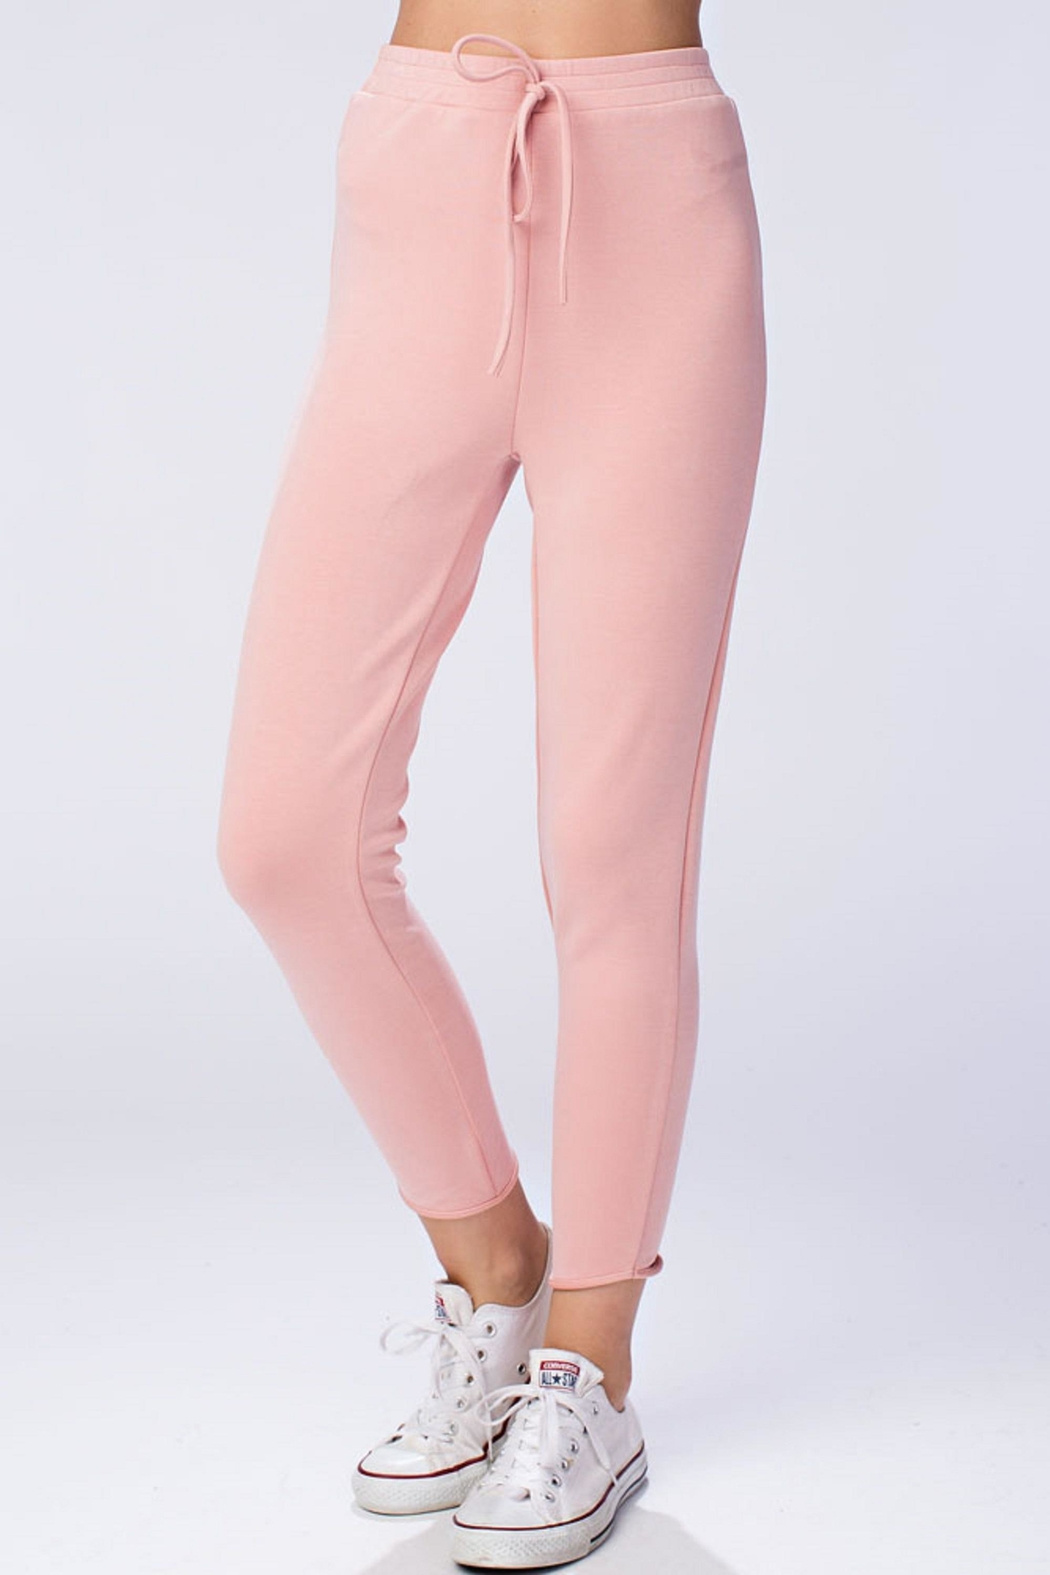 honeybelle Pink Drawstring Pants - Front Cropped Image